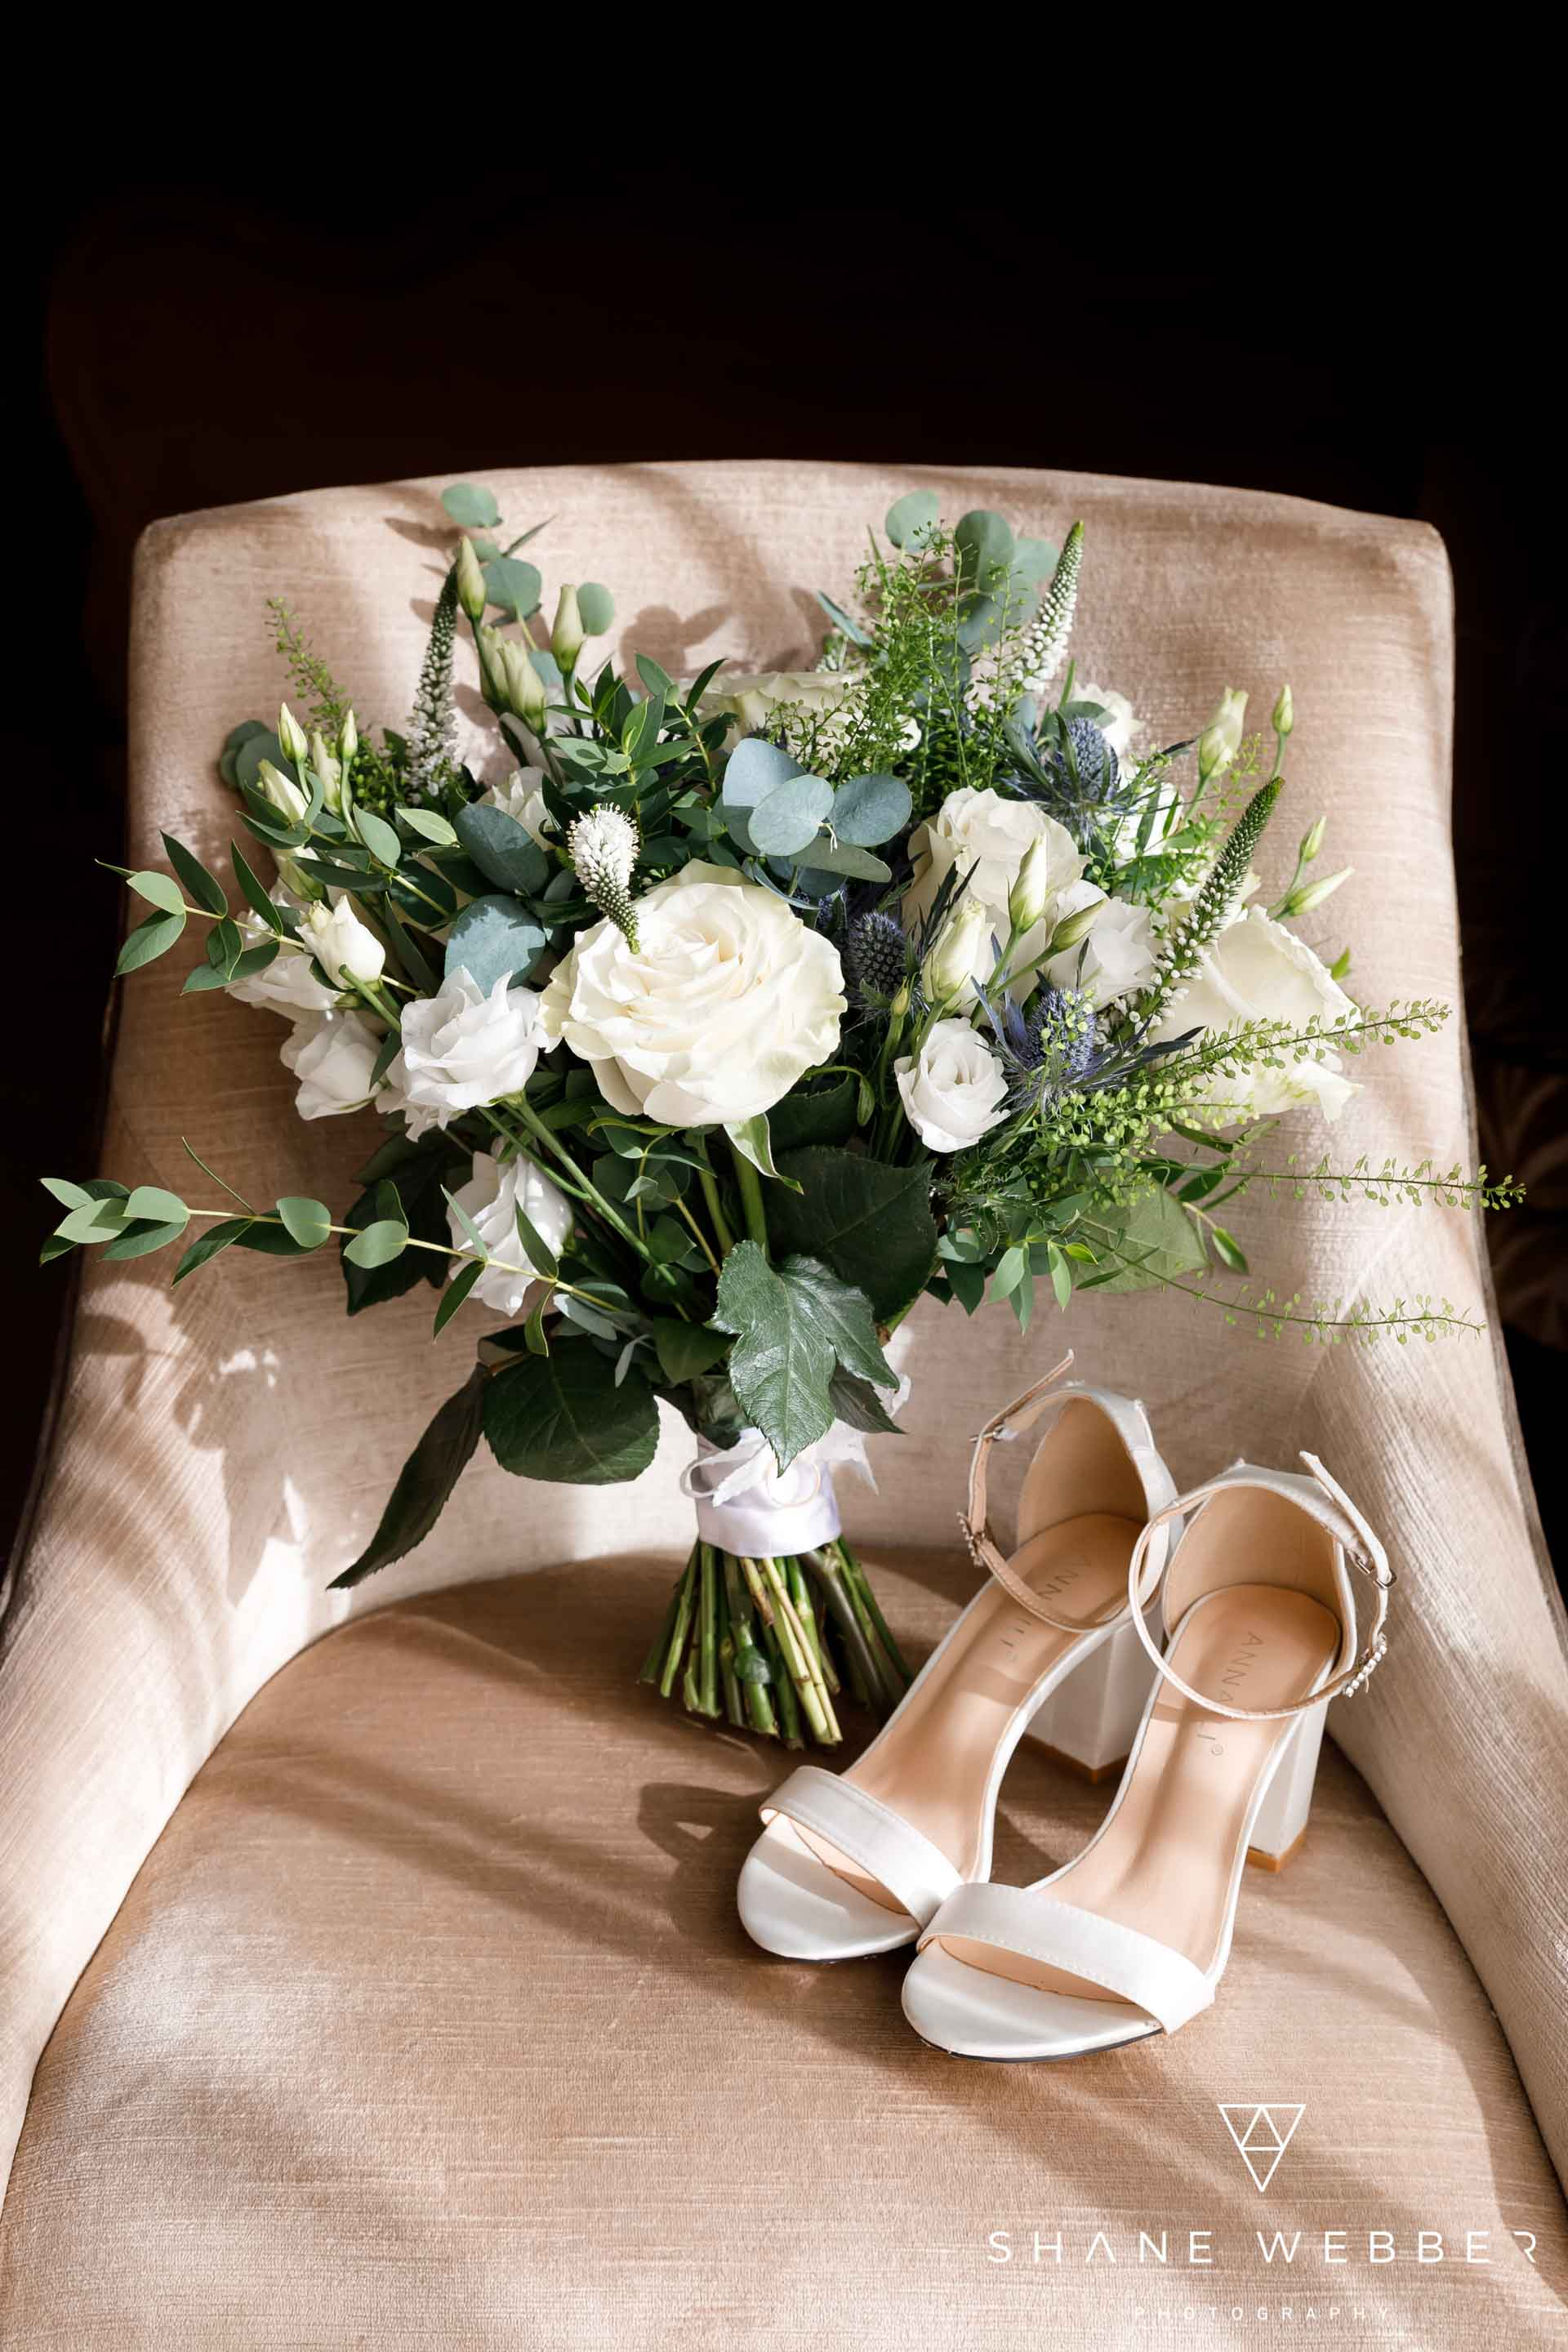 Wedding day shoe and flowers photo